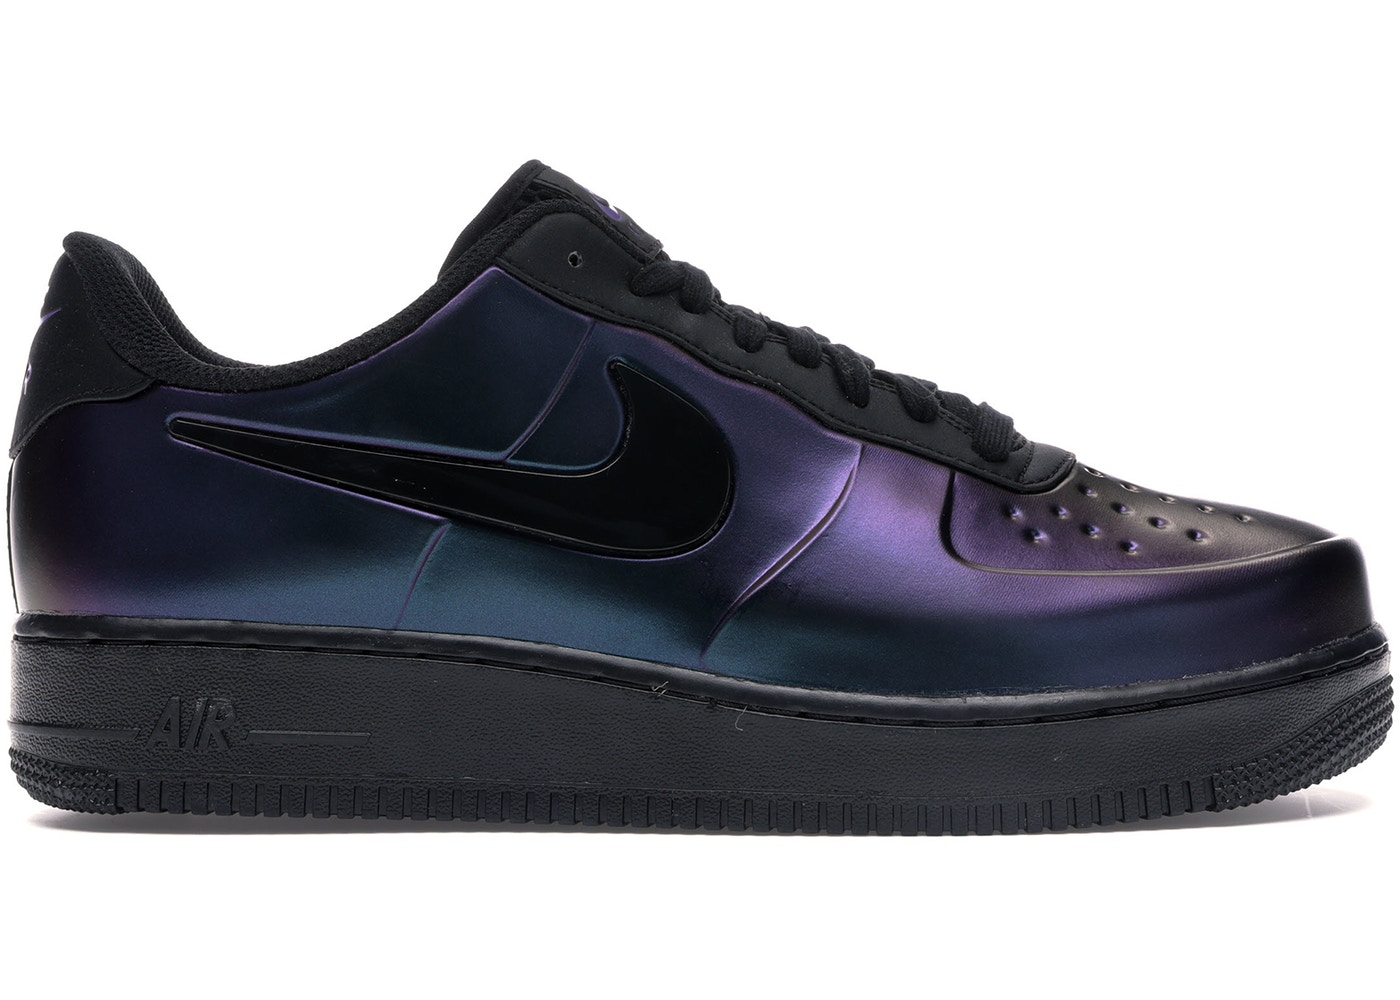 new product 89edd af2f3 Air Force 1 Foamposite Pro Cup Court Purple